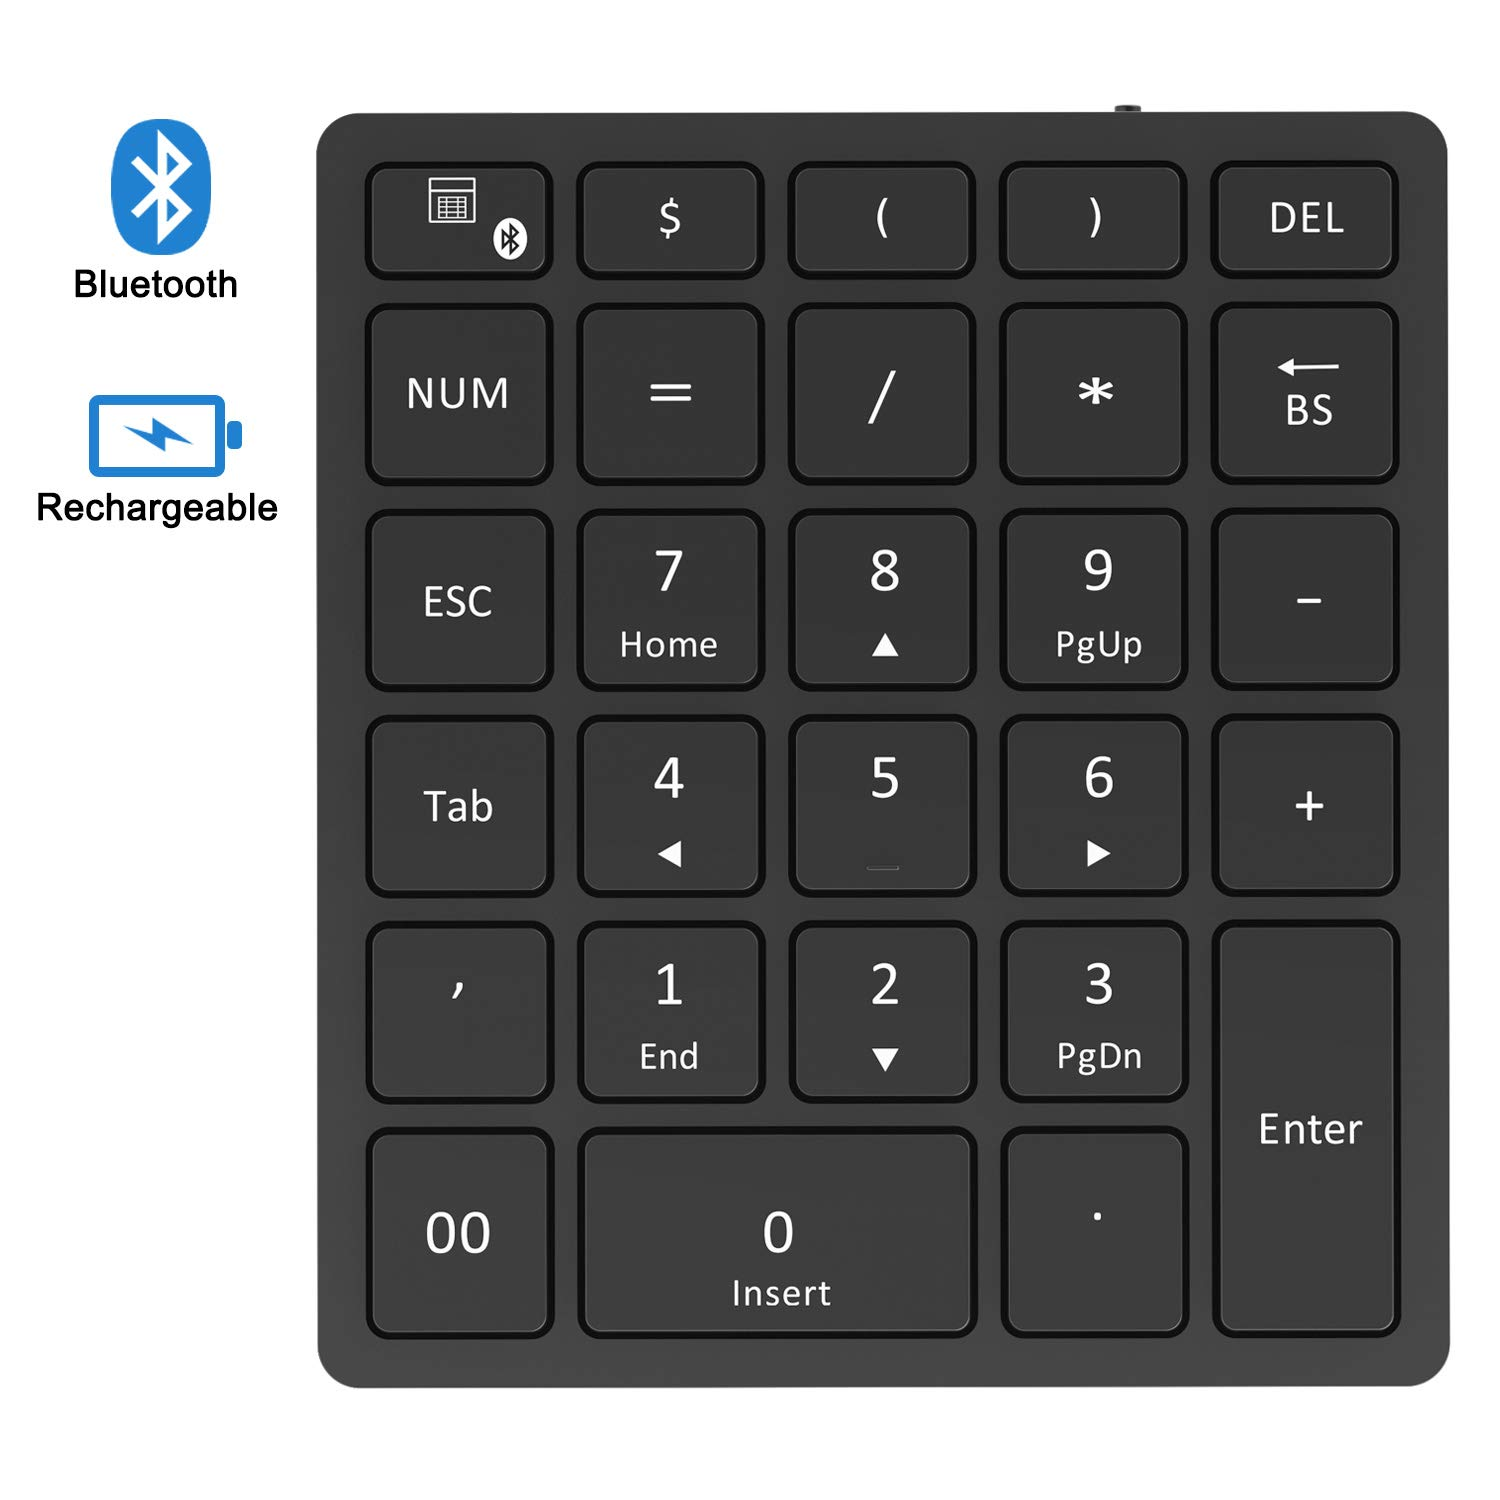 Bluetooth Numeric Keypad, Jelly Comb Rechargeable Portable Wireless Bluetooth 28-Key Number Pad with Multiple Shortcuts for Tablet, Laptop, Notebook, PC, Desktop and More (Black) by Jelly Comb (Image #1)